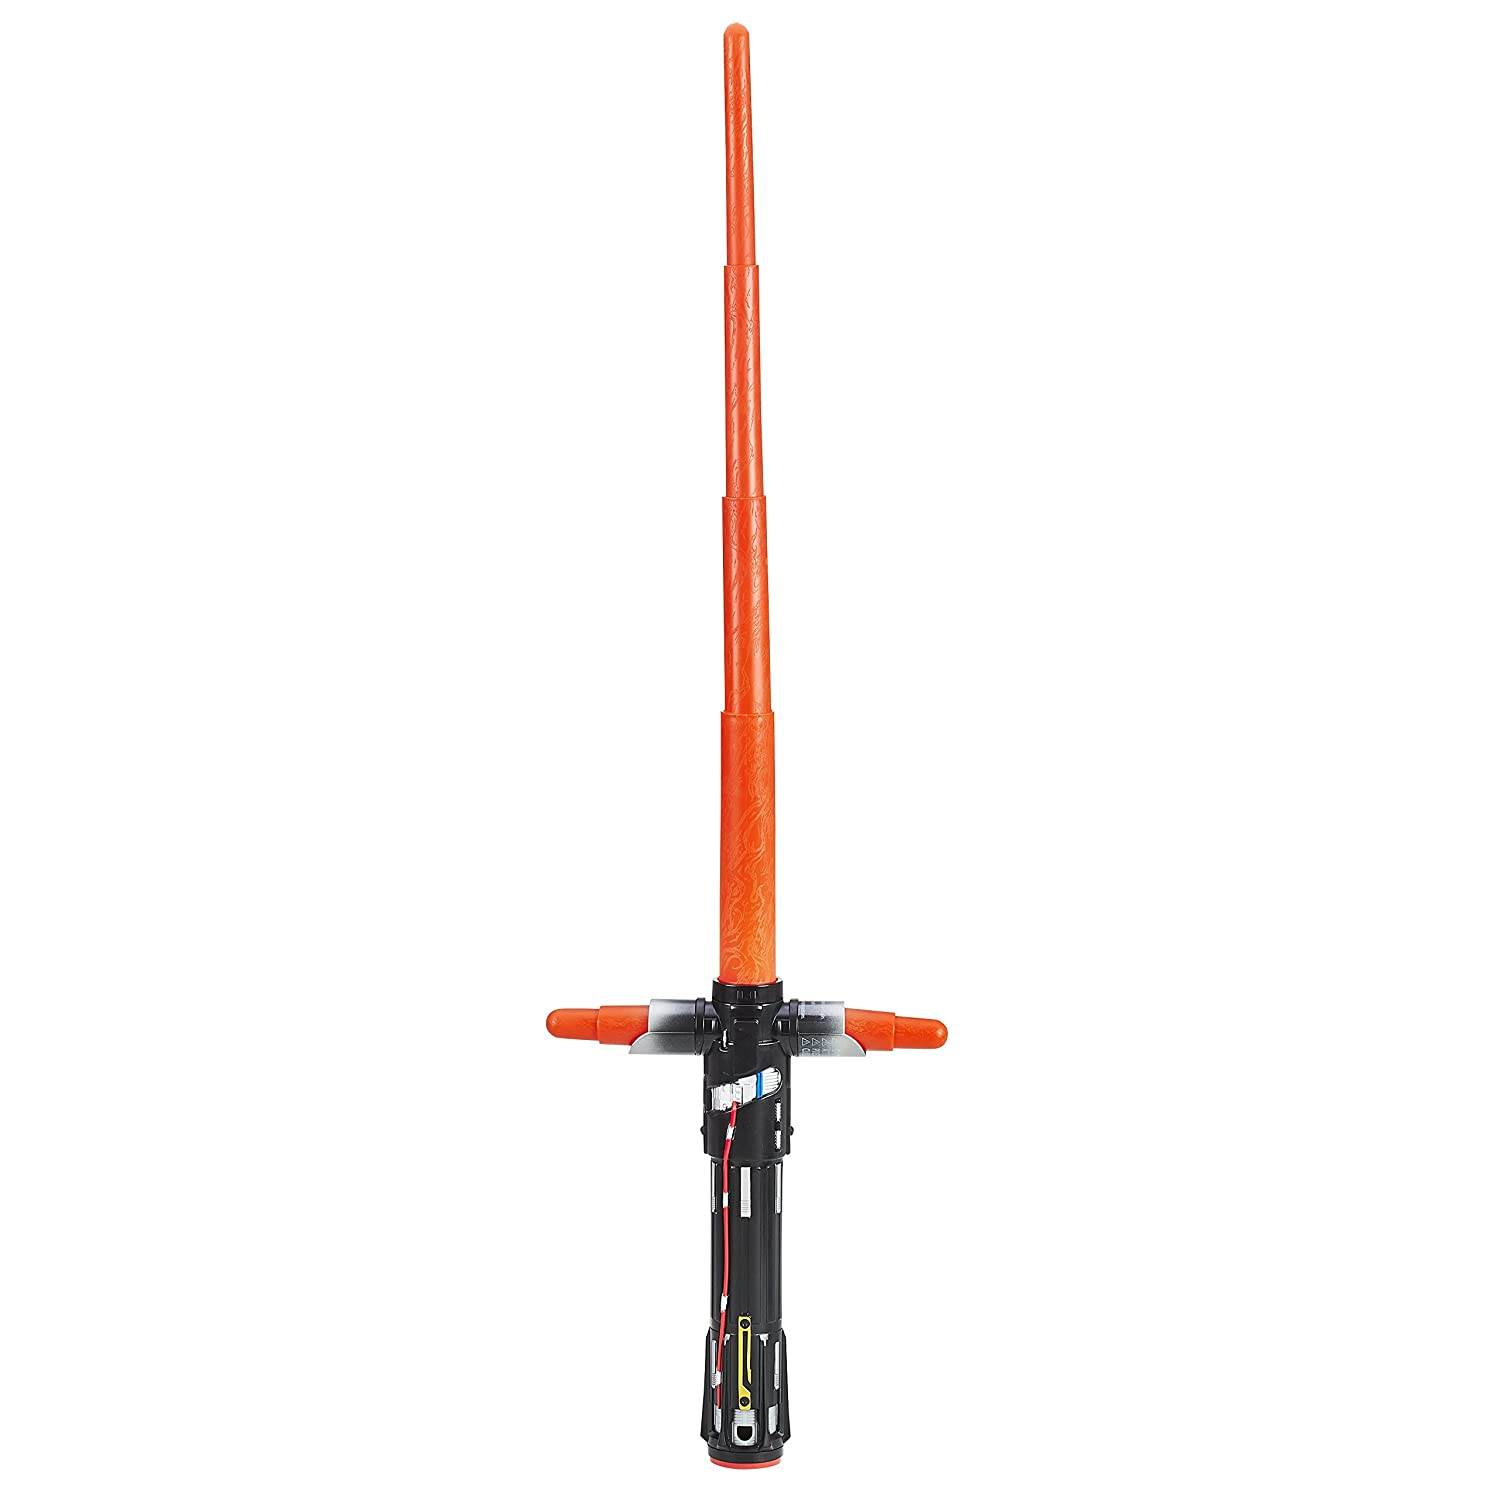 Star Wars: The Last Jedi BladeBuilders Kylo Ren Extendable Lightsaber Hasbro C1567